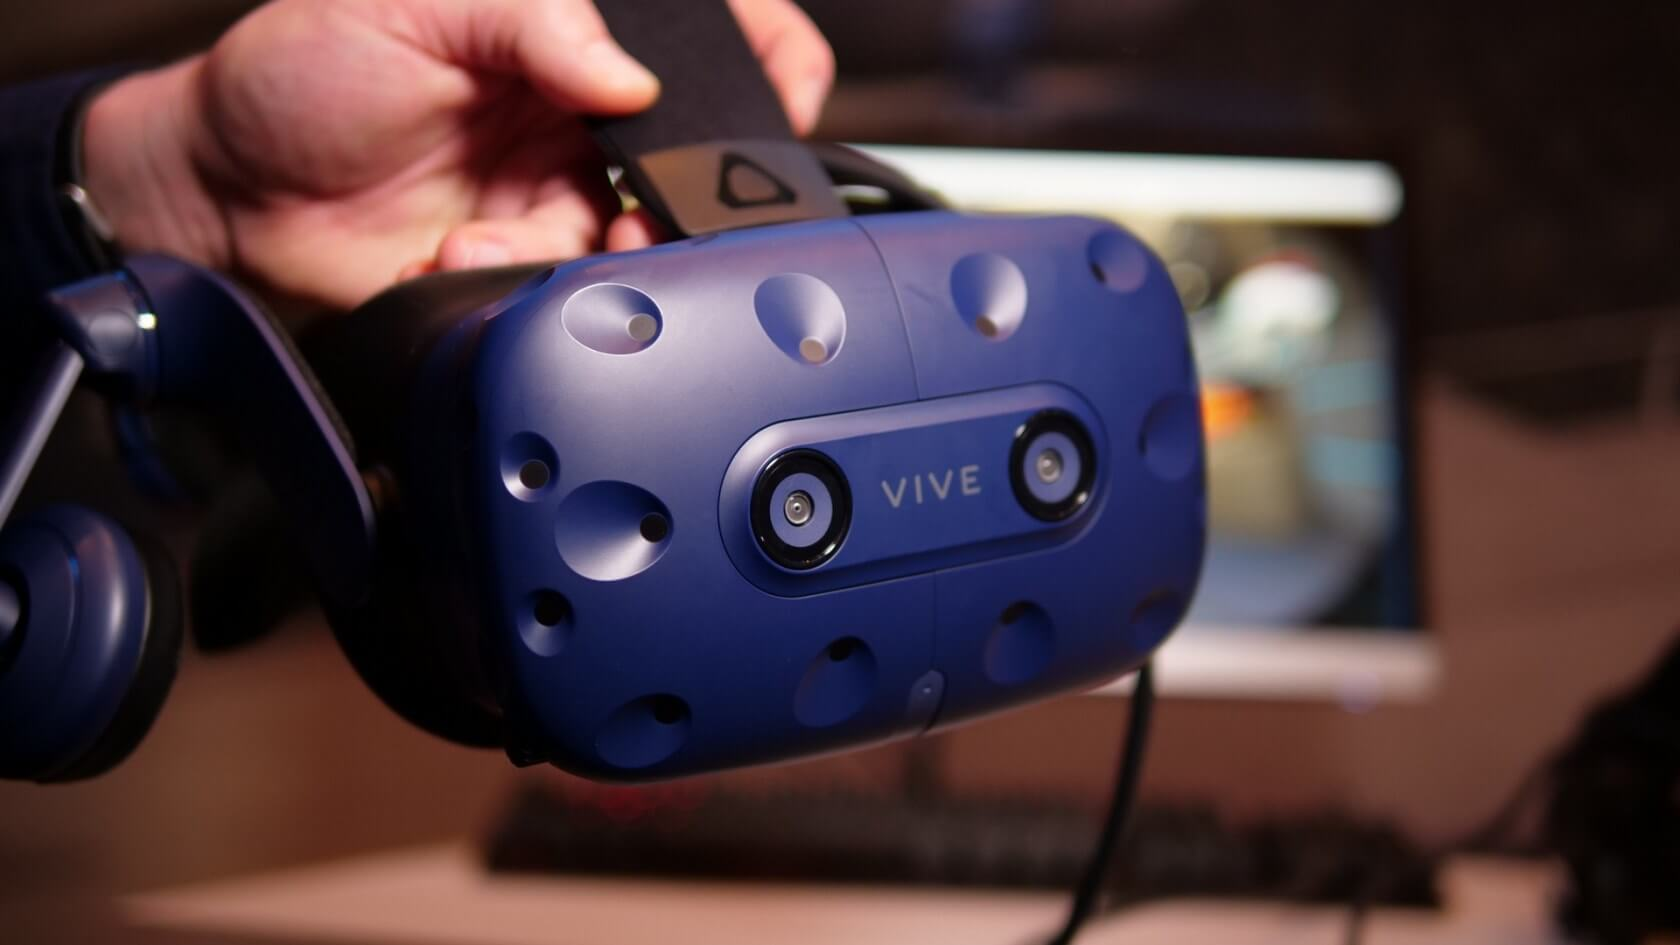 Valve Launches 'Motion Smoothing' for SteamVR, Allowing Low-end Machines to Get Higher Framerates